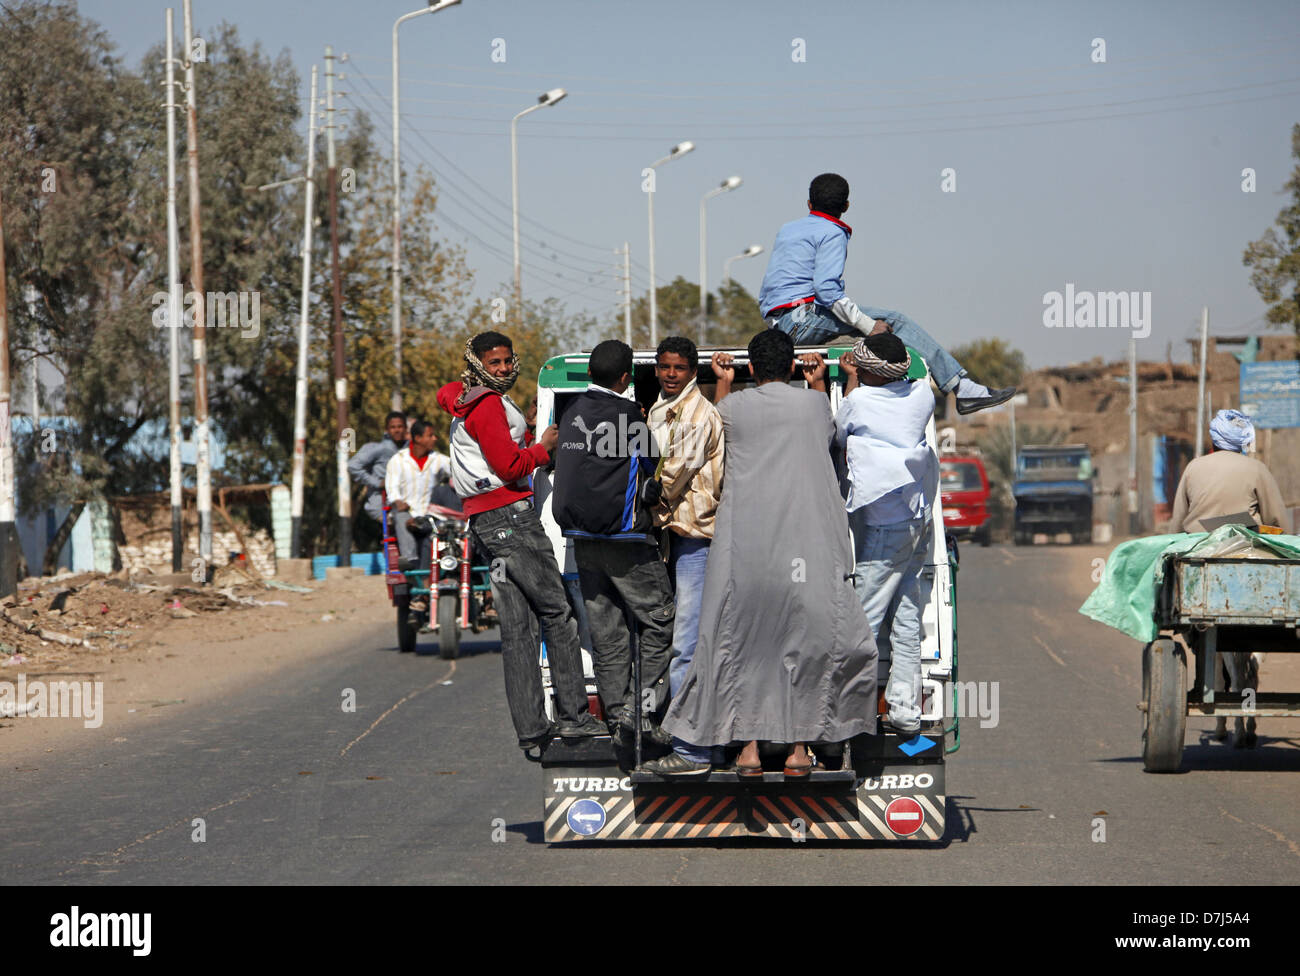 YOUTHS ON PUBLIC TRANSPORT NEAR ASWAN EGYPT 11 January 2013 - Stock Image